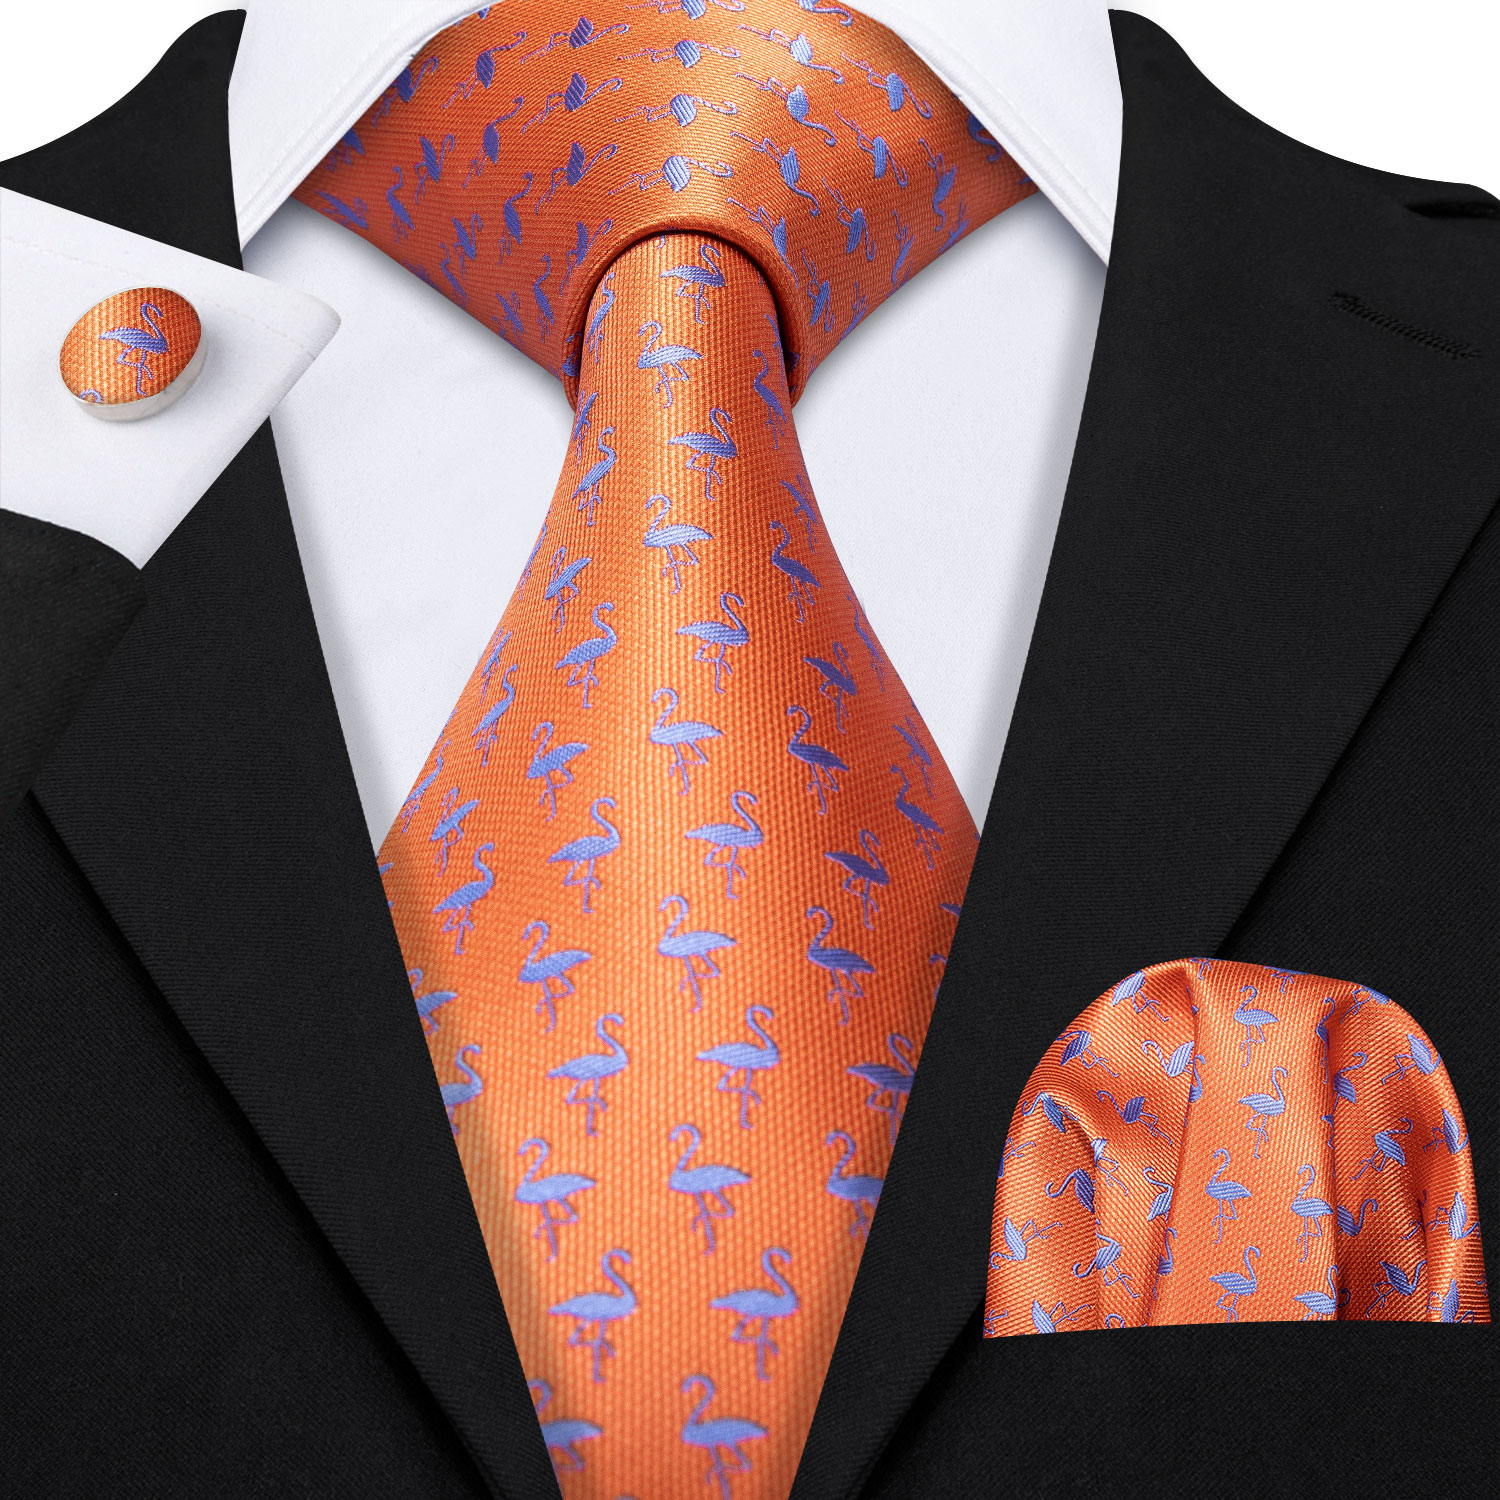 Barry.Wang Fashion Animal Men's 100% Silk Tie Bird Pocket Square Orange Flamingo Neckties Wedding Gift Box Set Neck Ties LS-5178